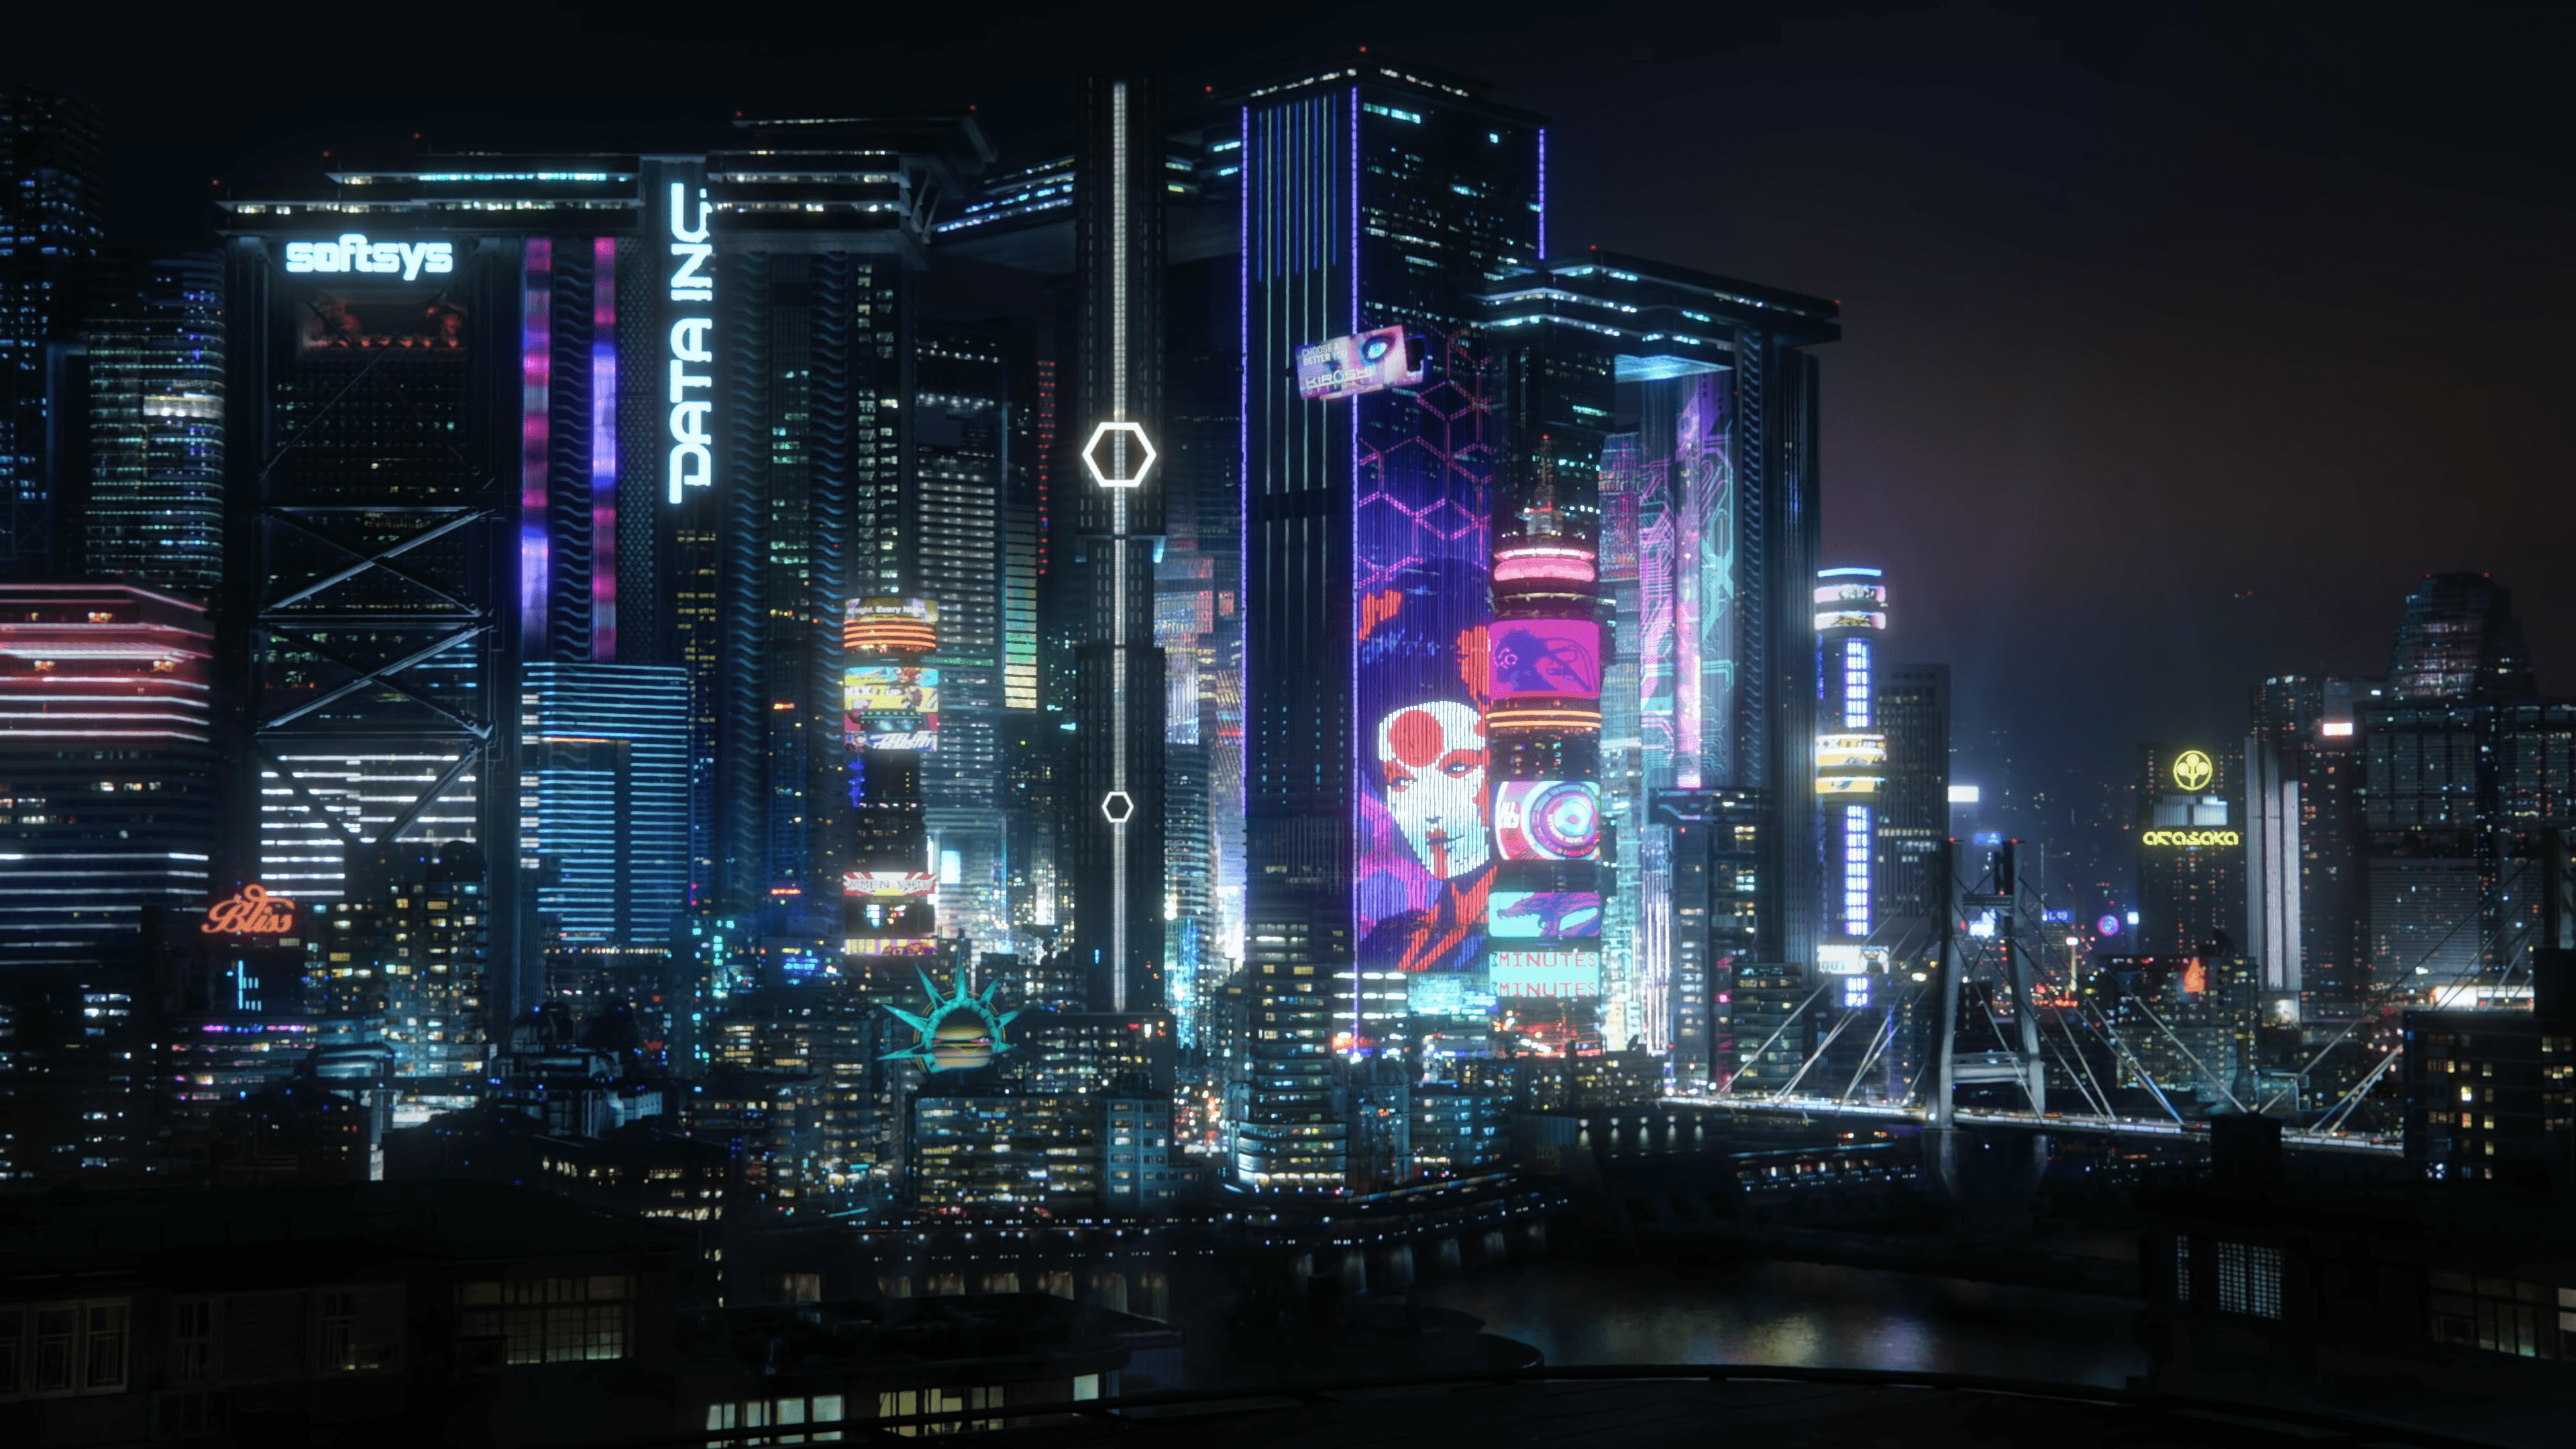 Aesthetic Night City Pc Hd Wallpapers Wallpaper Cave Looking for the best night city wallpaper? aesthetic night city pc hd wallpapers